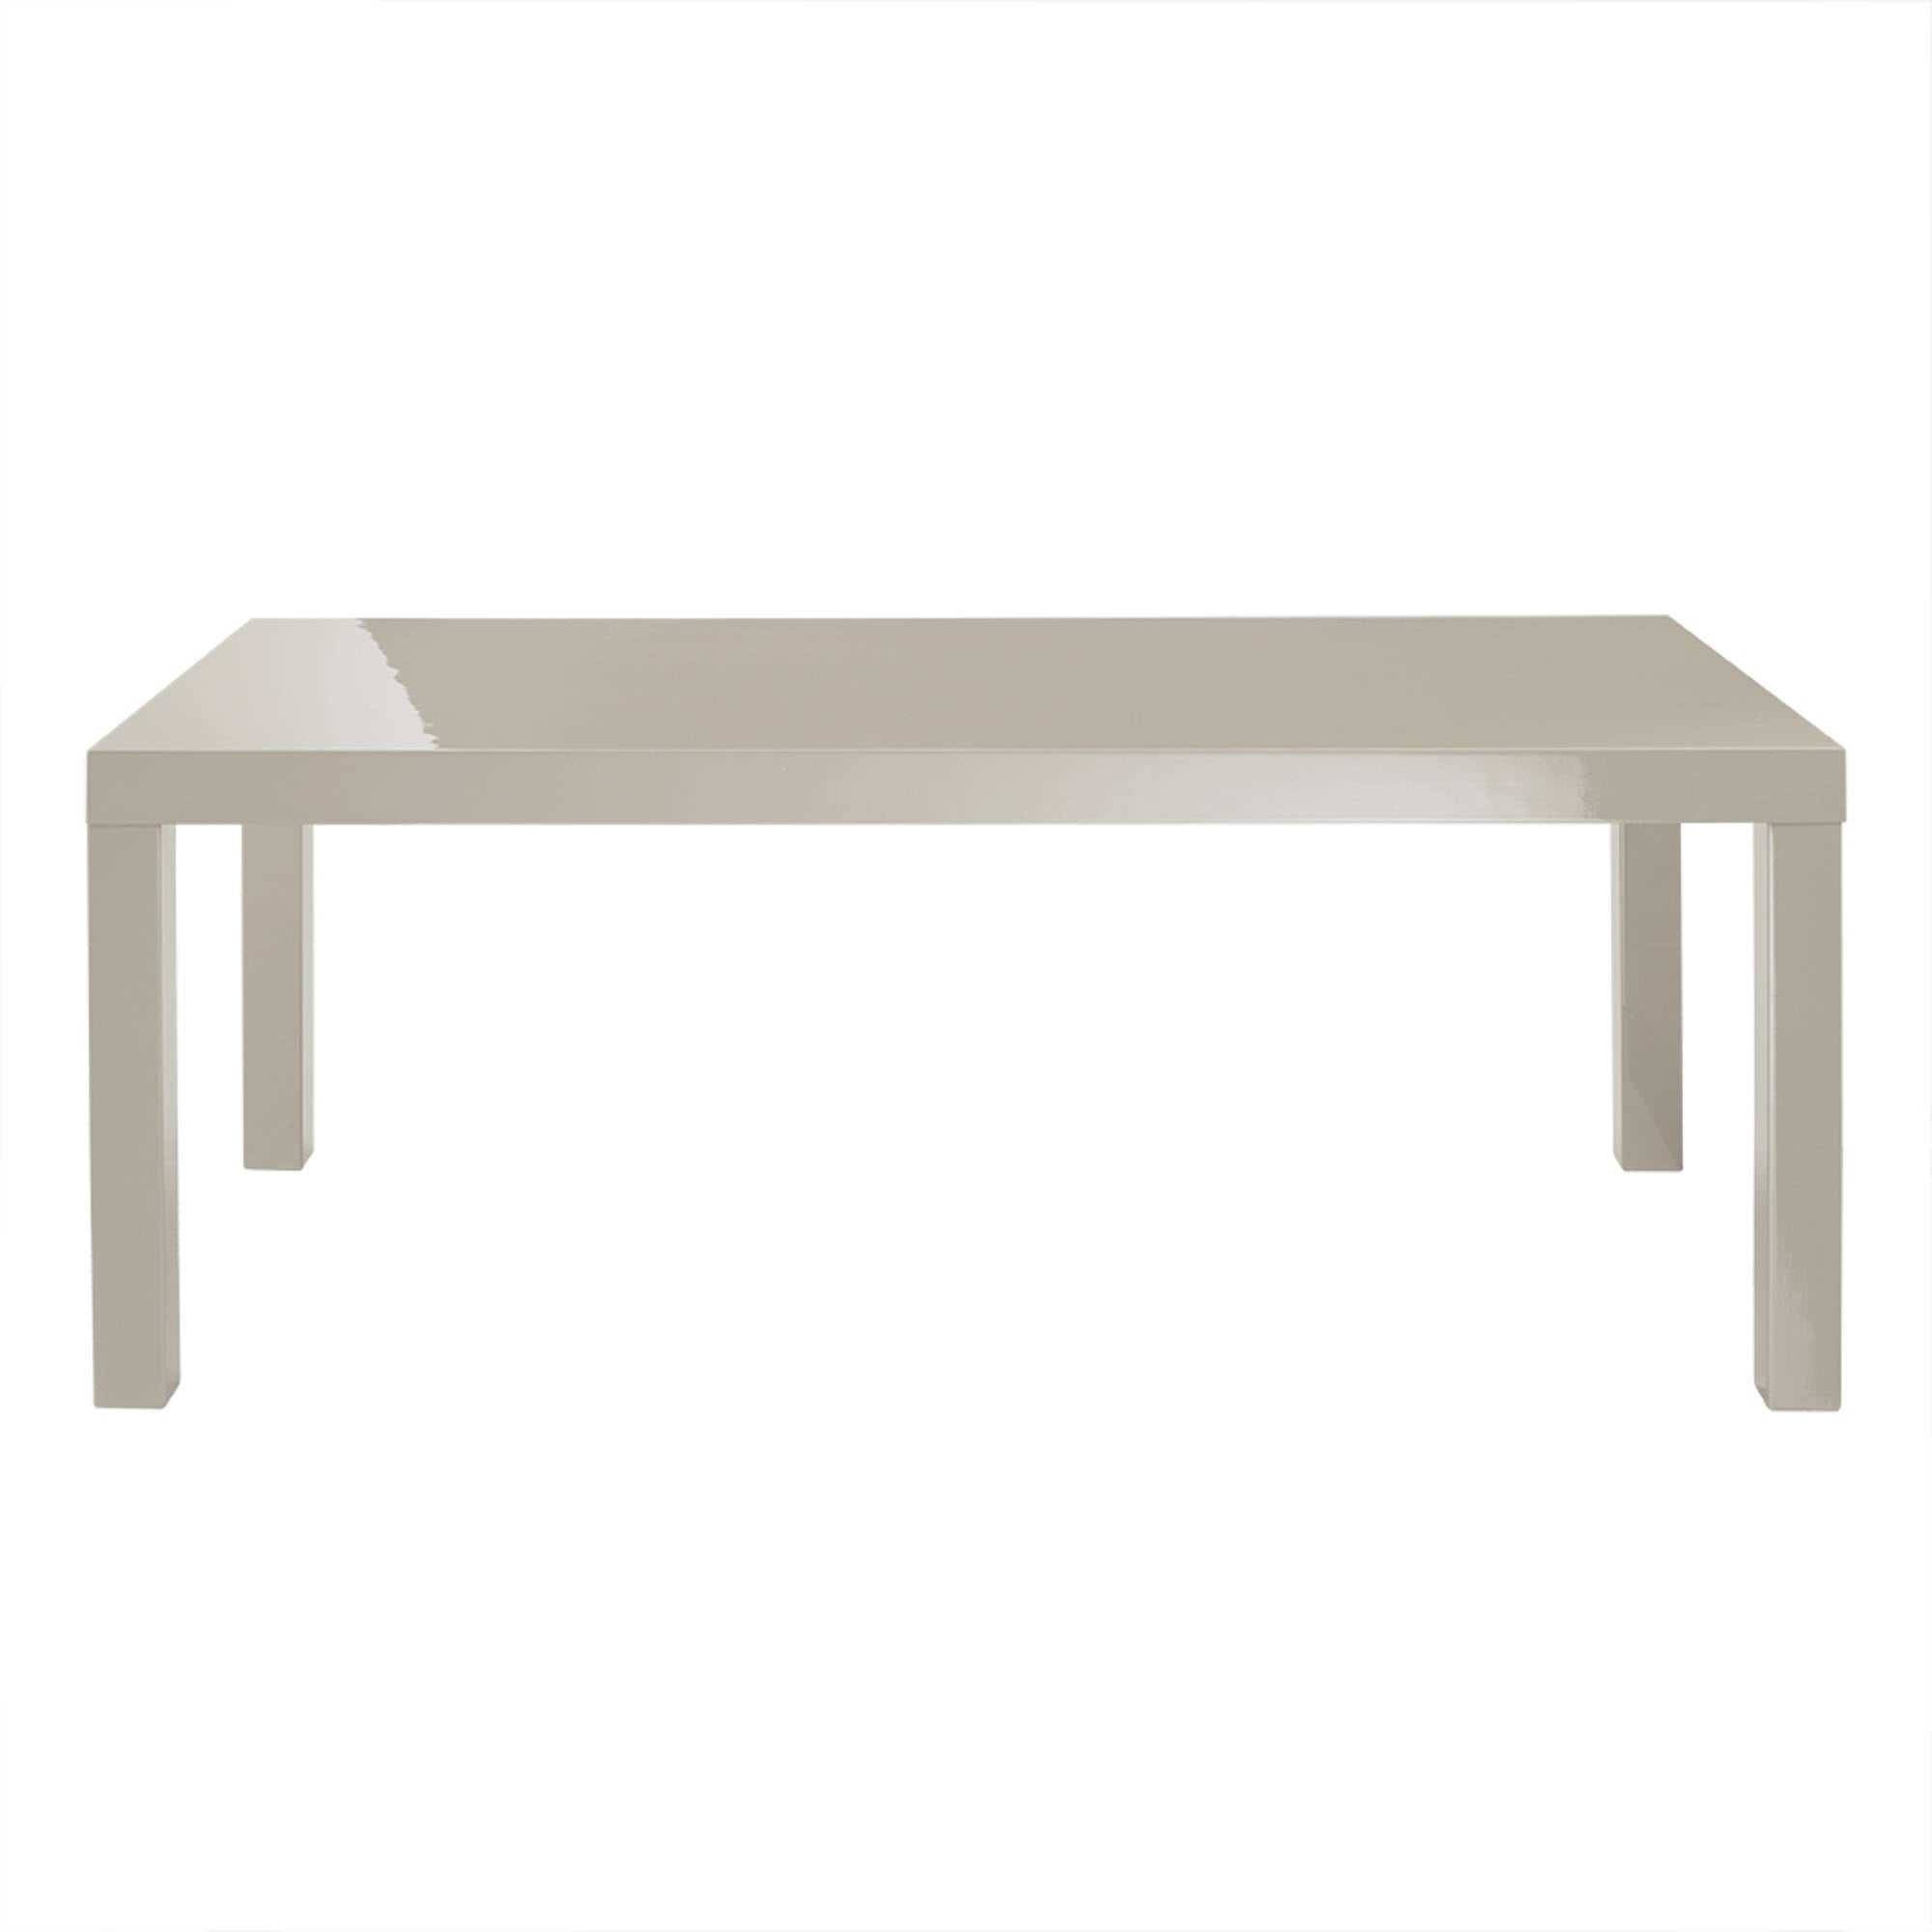 Sterling Coffee Table in Stone - Ezzo